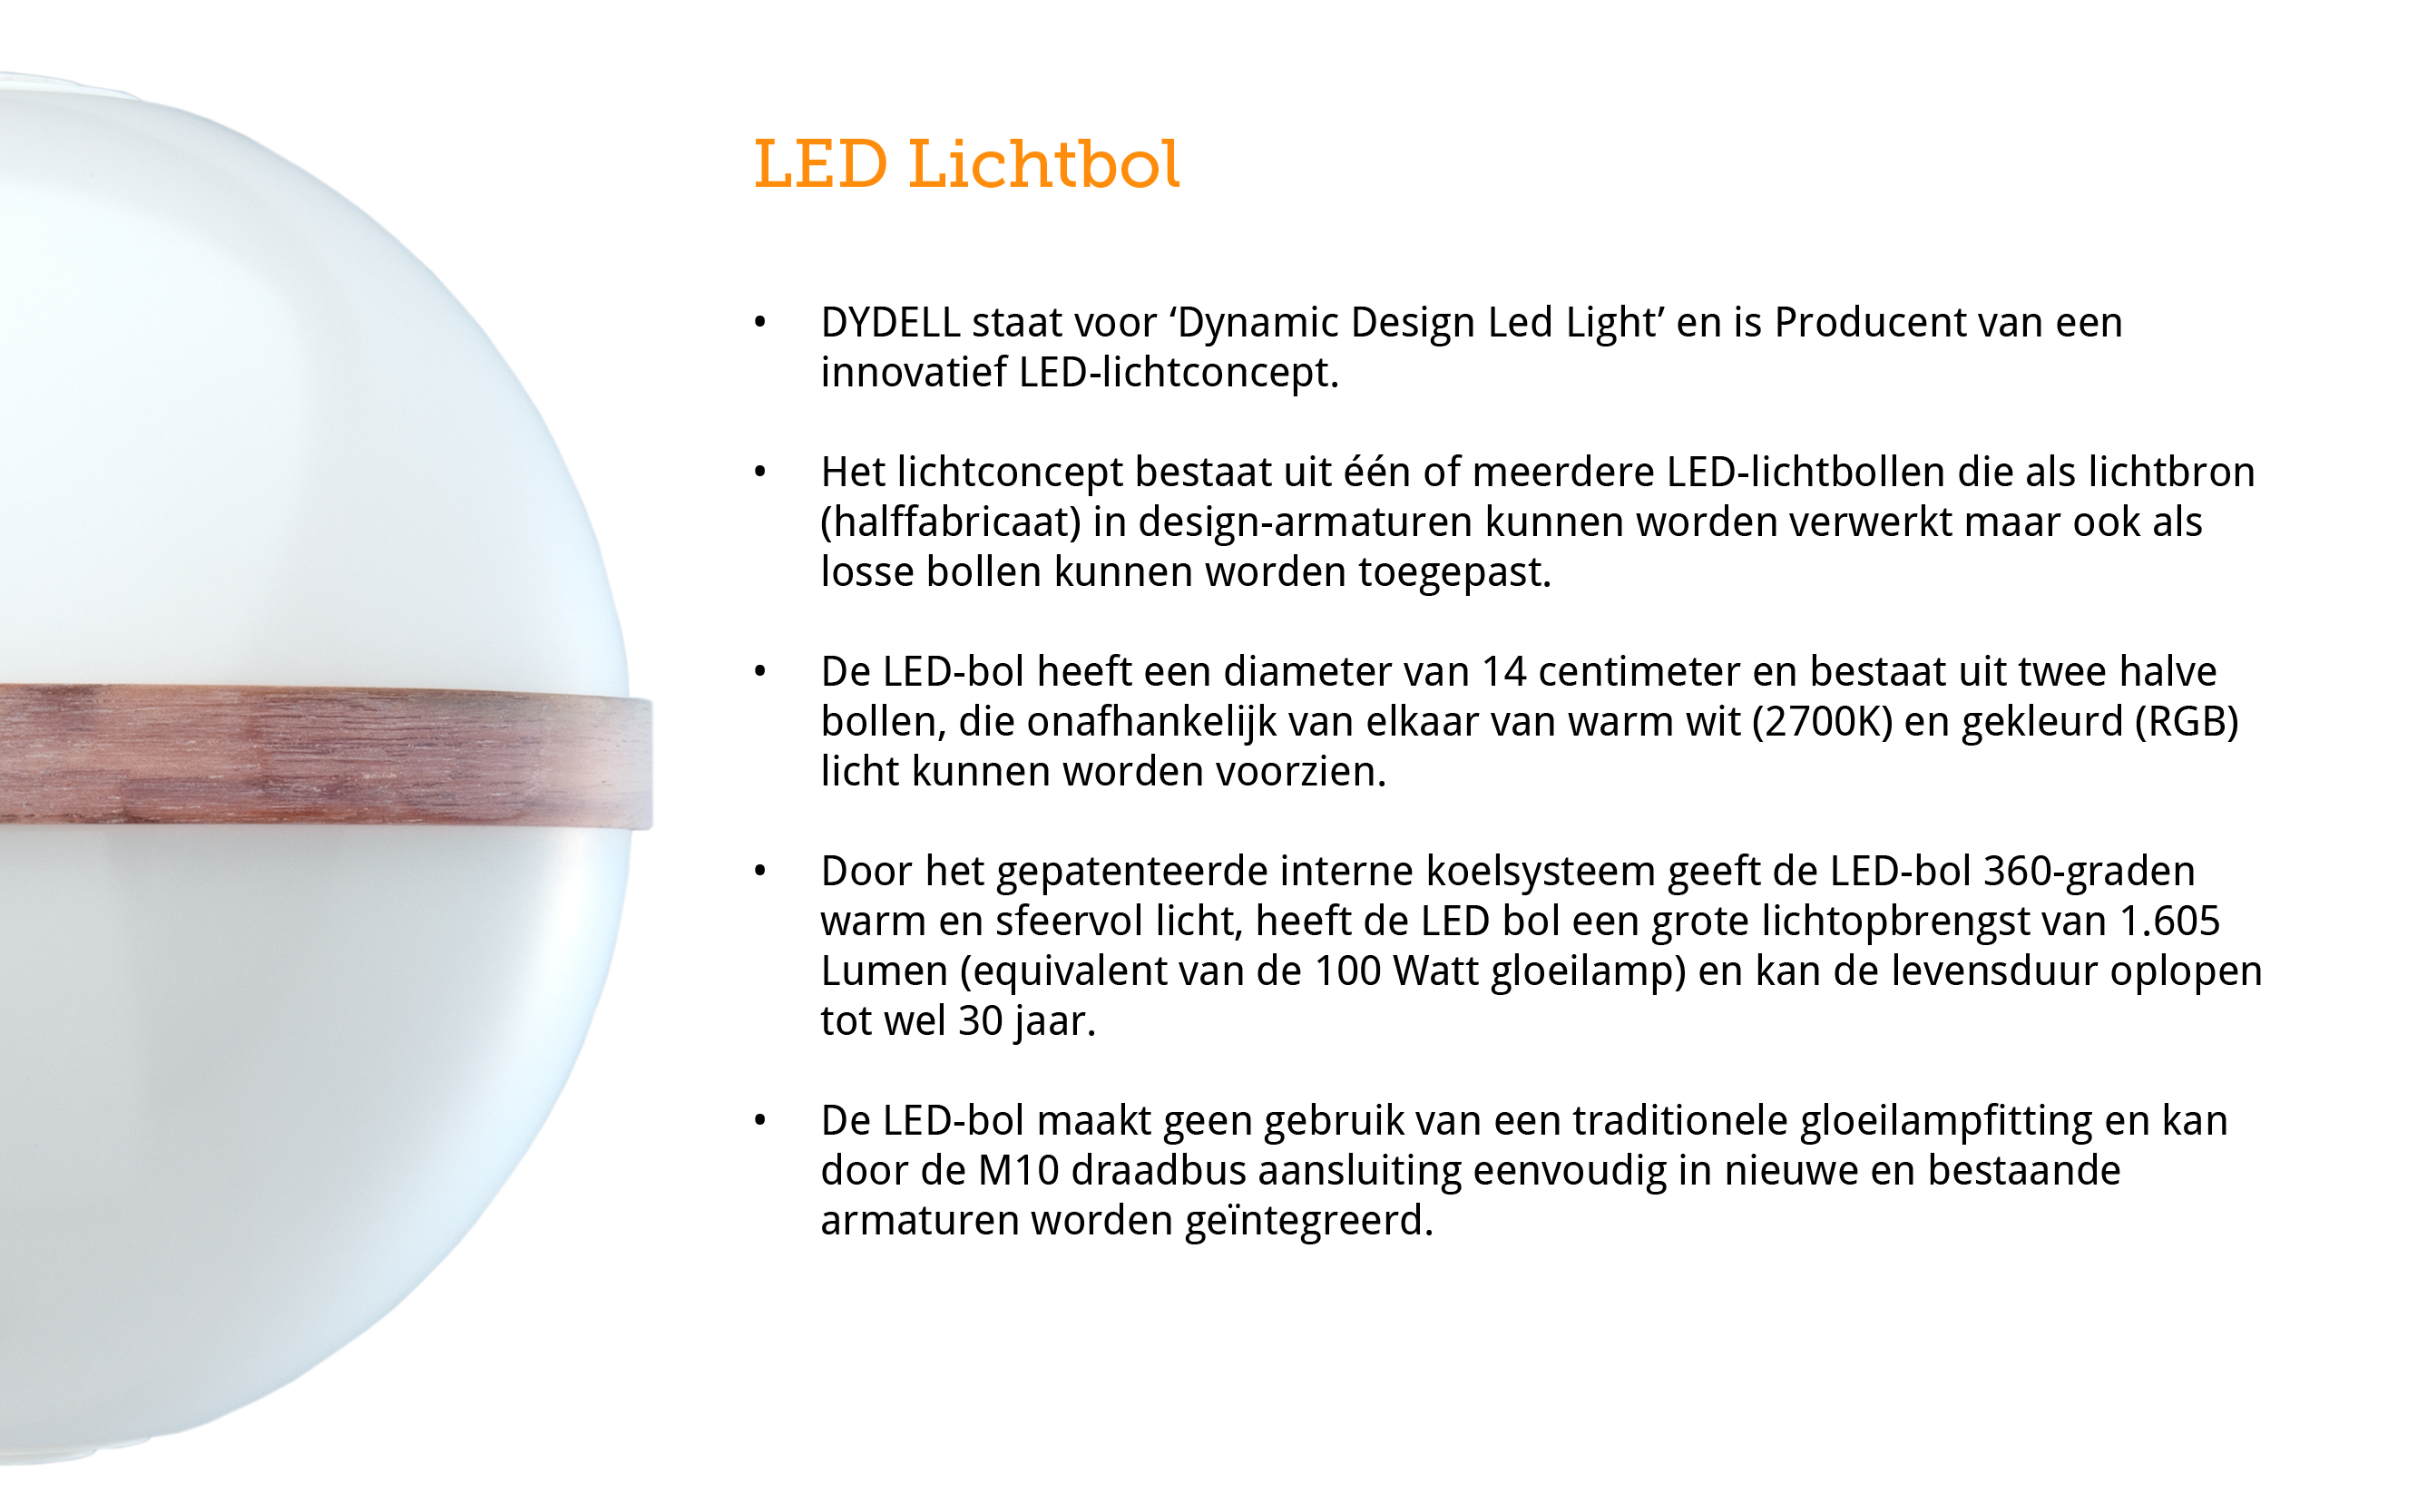 Content about the LED sphere, DYDELL as supplier, the light output of the LED sphere, easy integration and the uniek patented cooling system